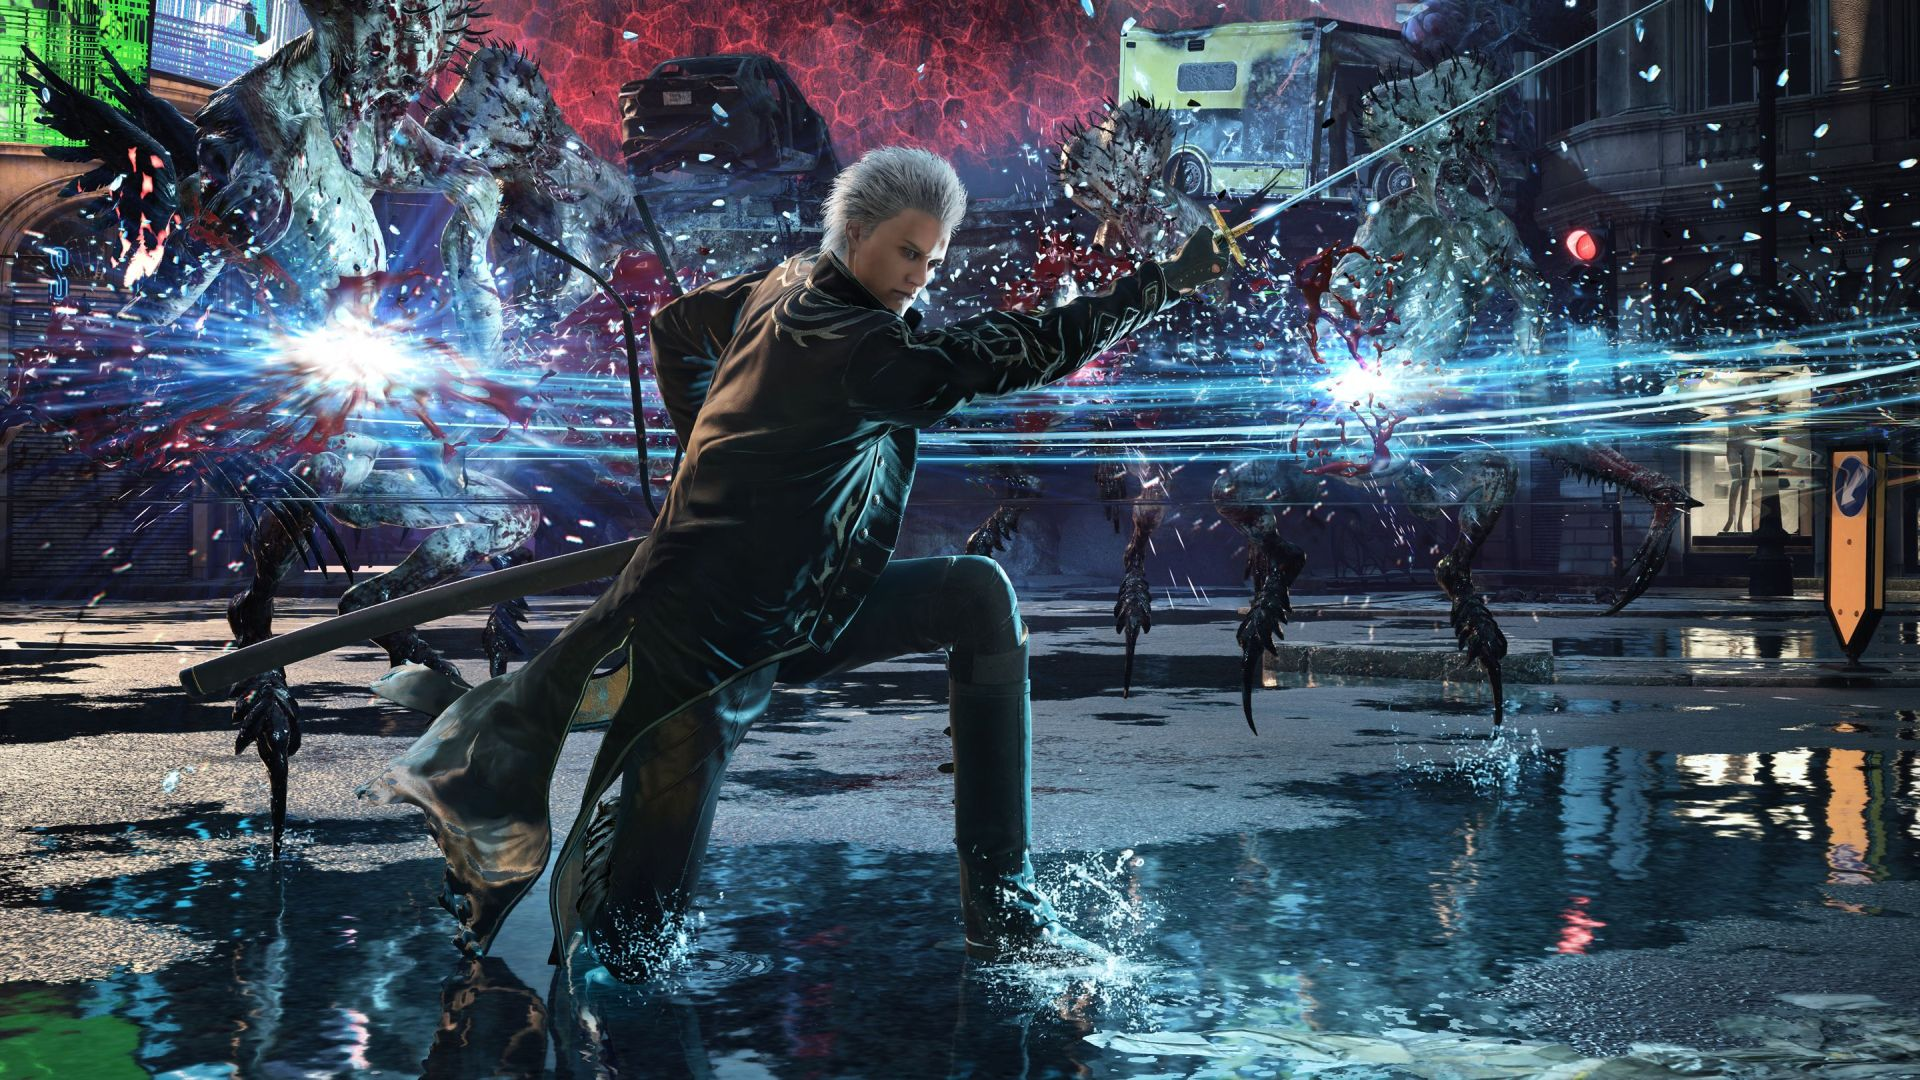 Devil May Cry 5 Special Edition Features 4K Resolution, Ray Tracing Effects At 60 FPS , And Running At 120 FPS